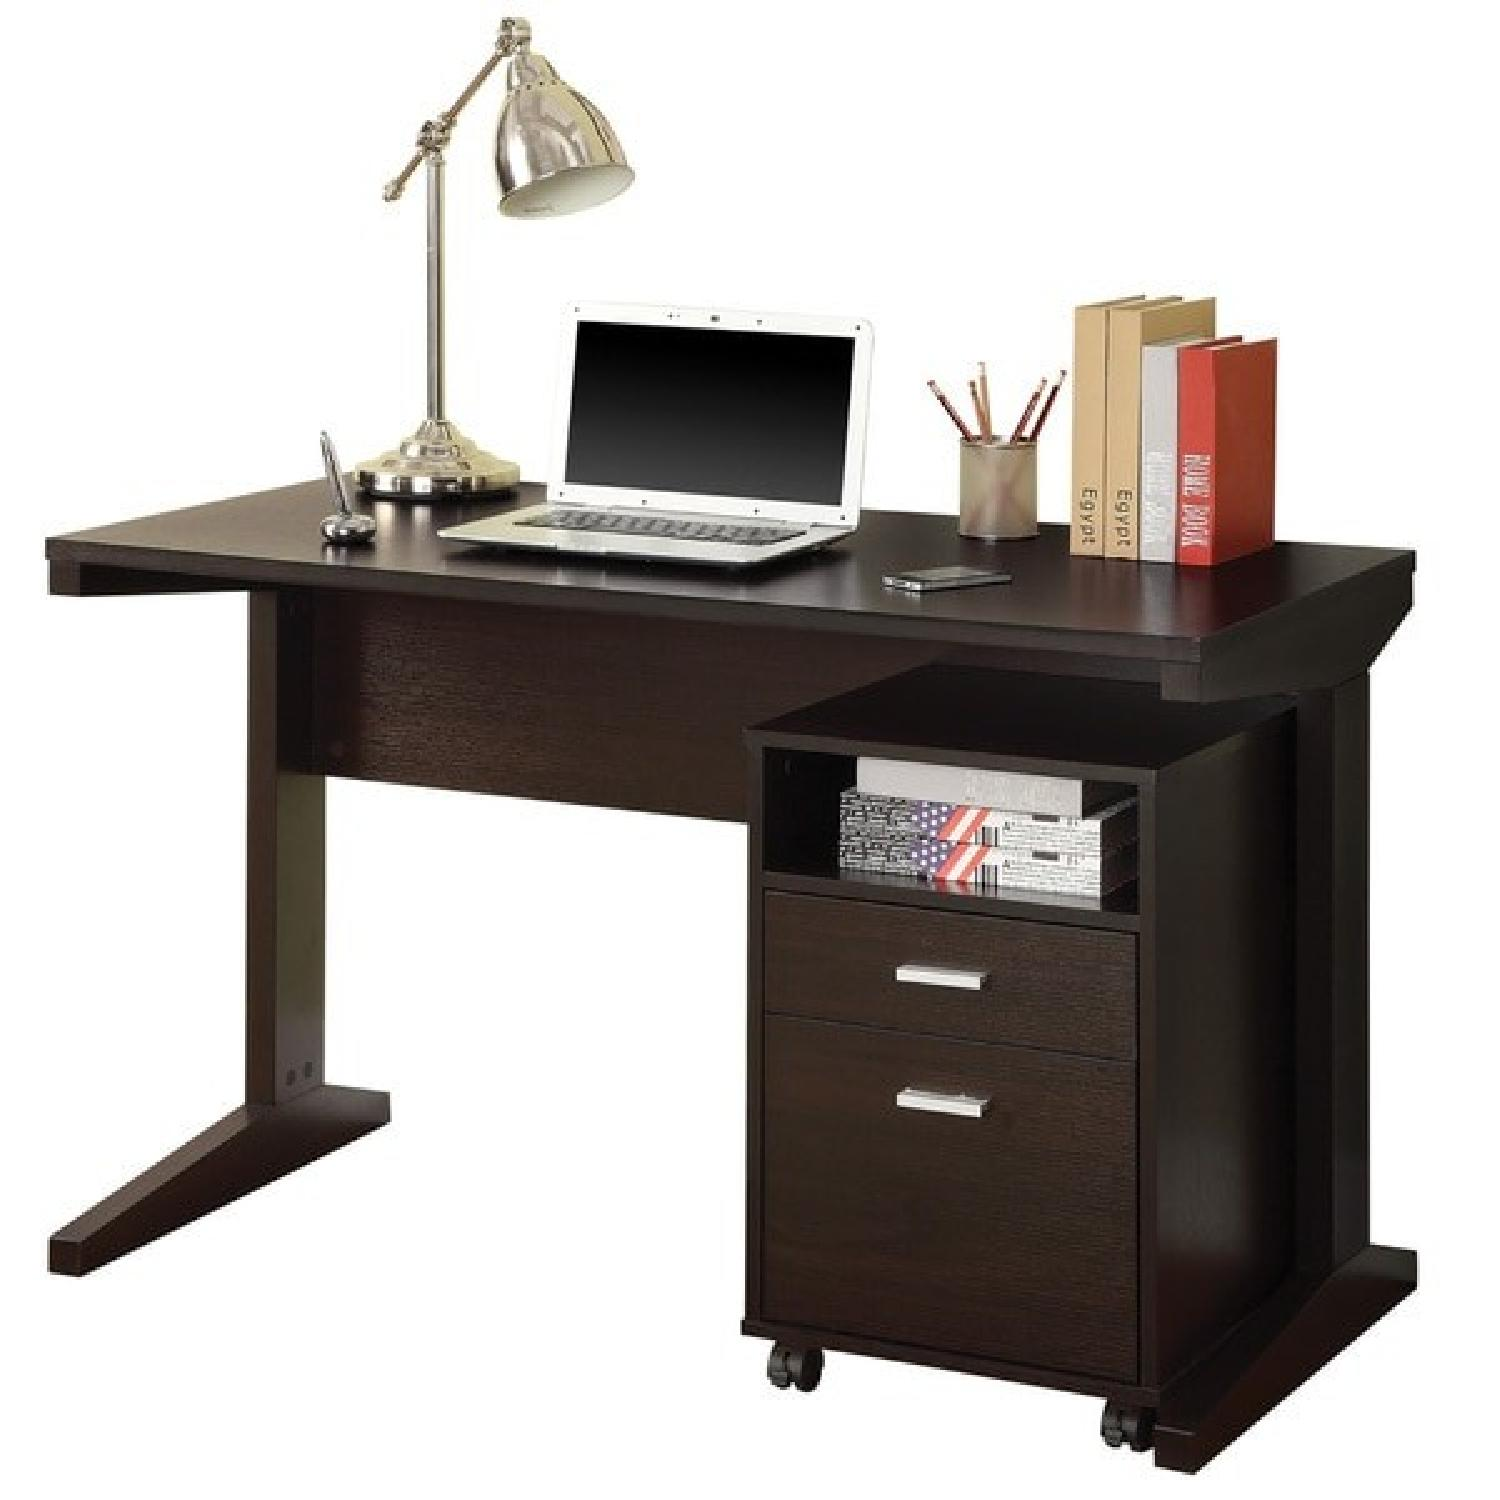 Modern Desk & Cabinet Set in Cappuccino Finish - image-0